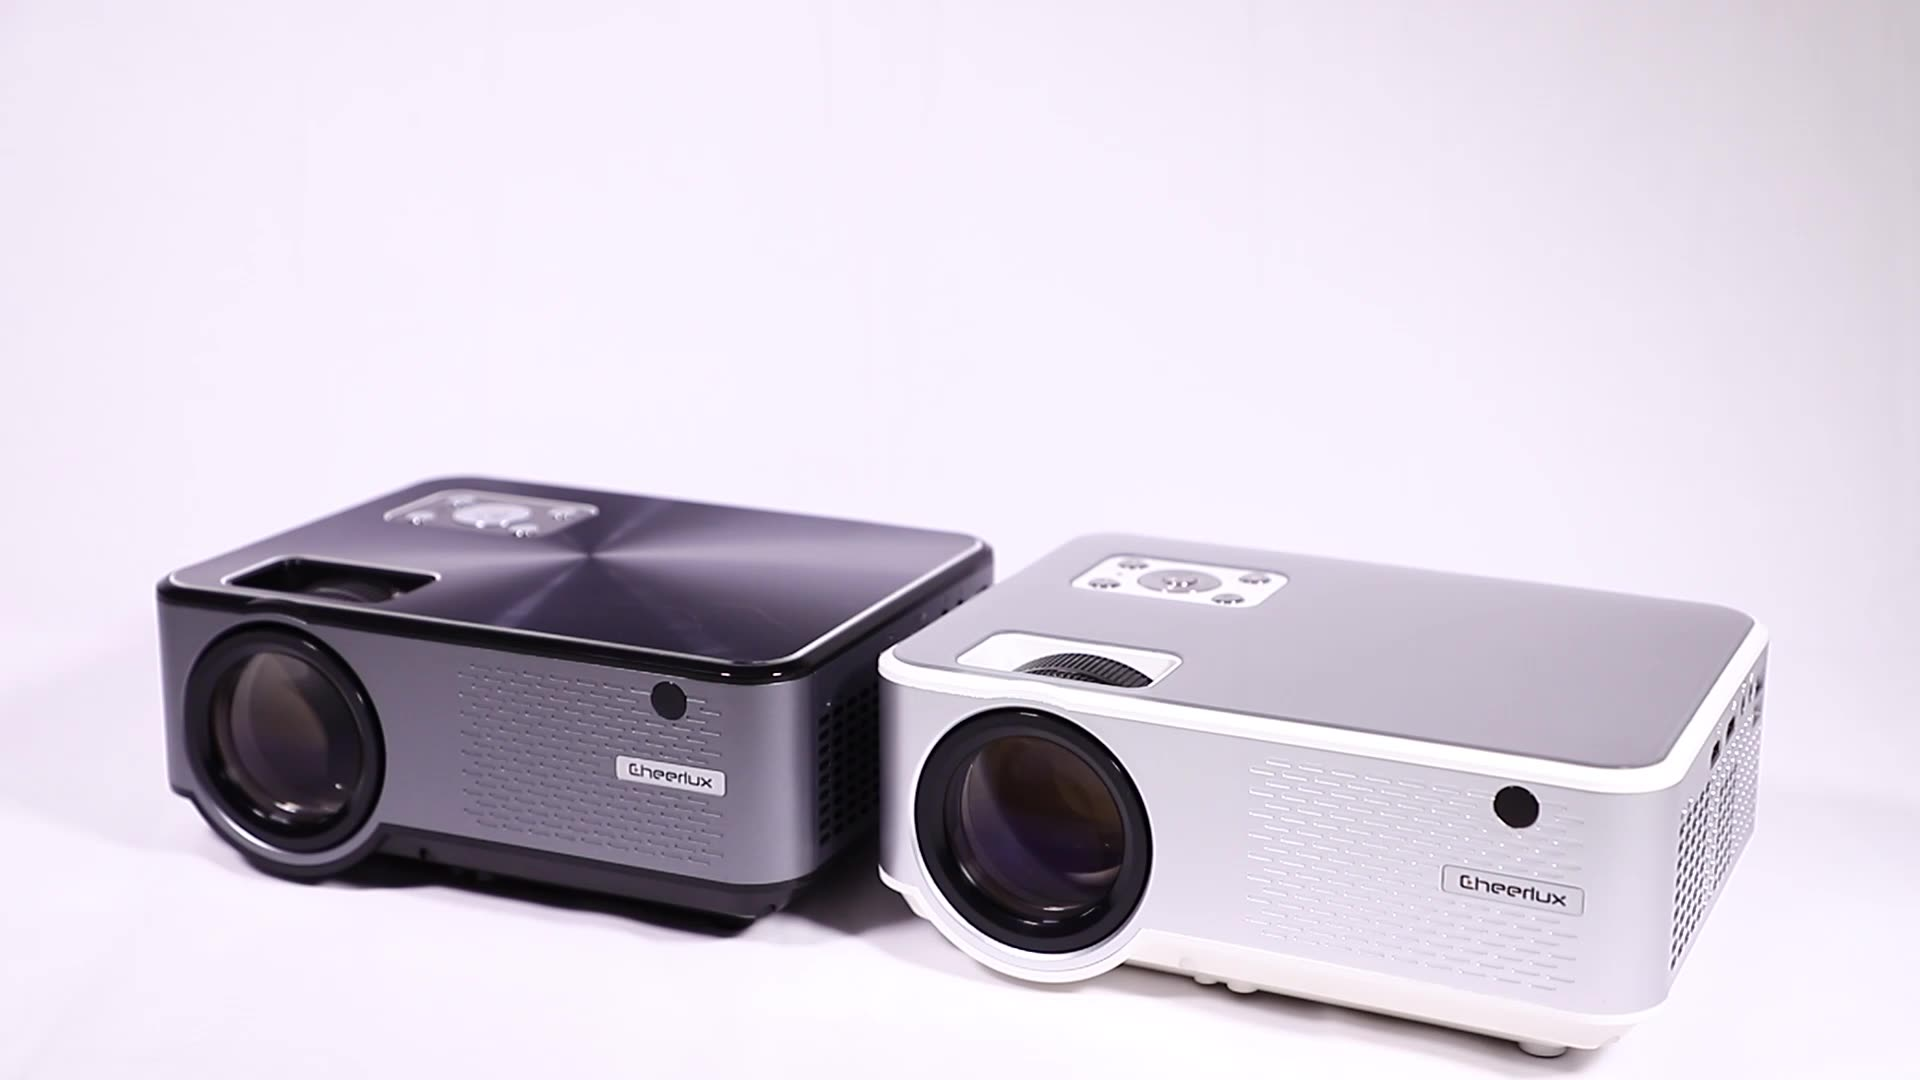 Cheerlux Pocket Projector Native 720p Support 1080p 1280*800 Home Cinema 2800 lumens HD Mini Projector LED Proyector